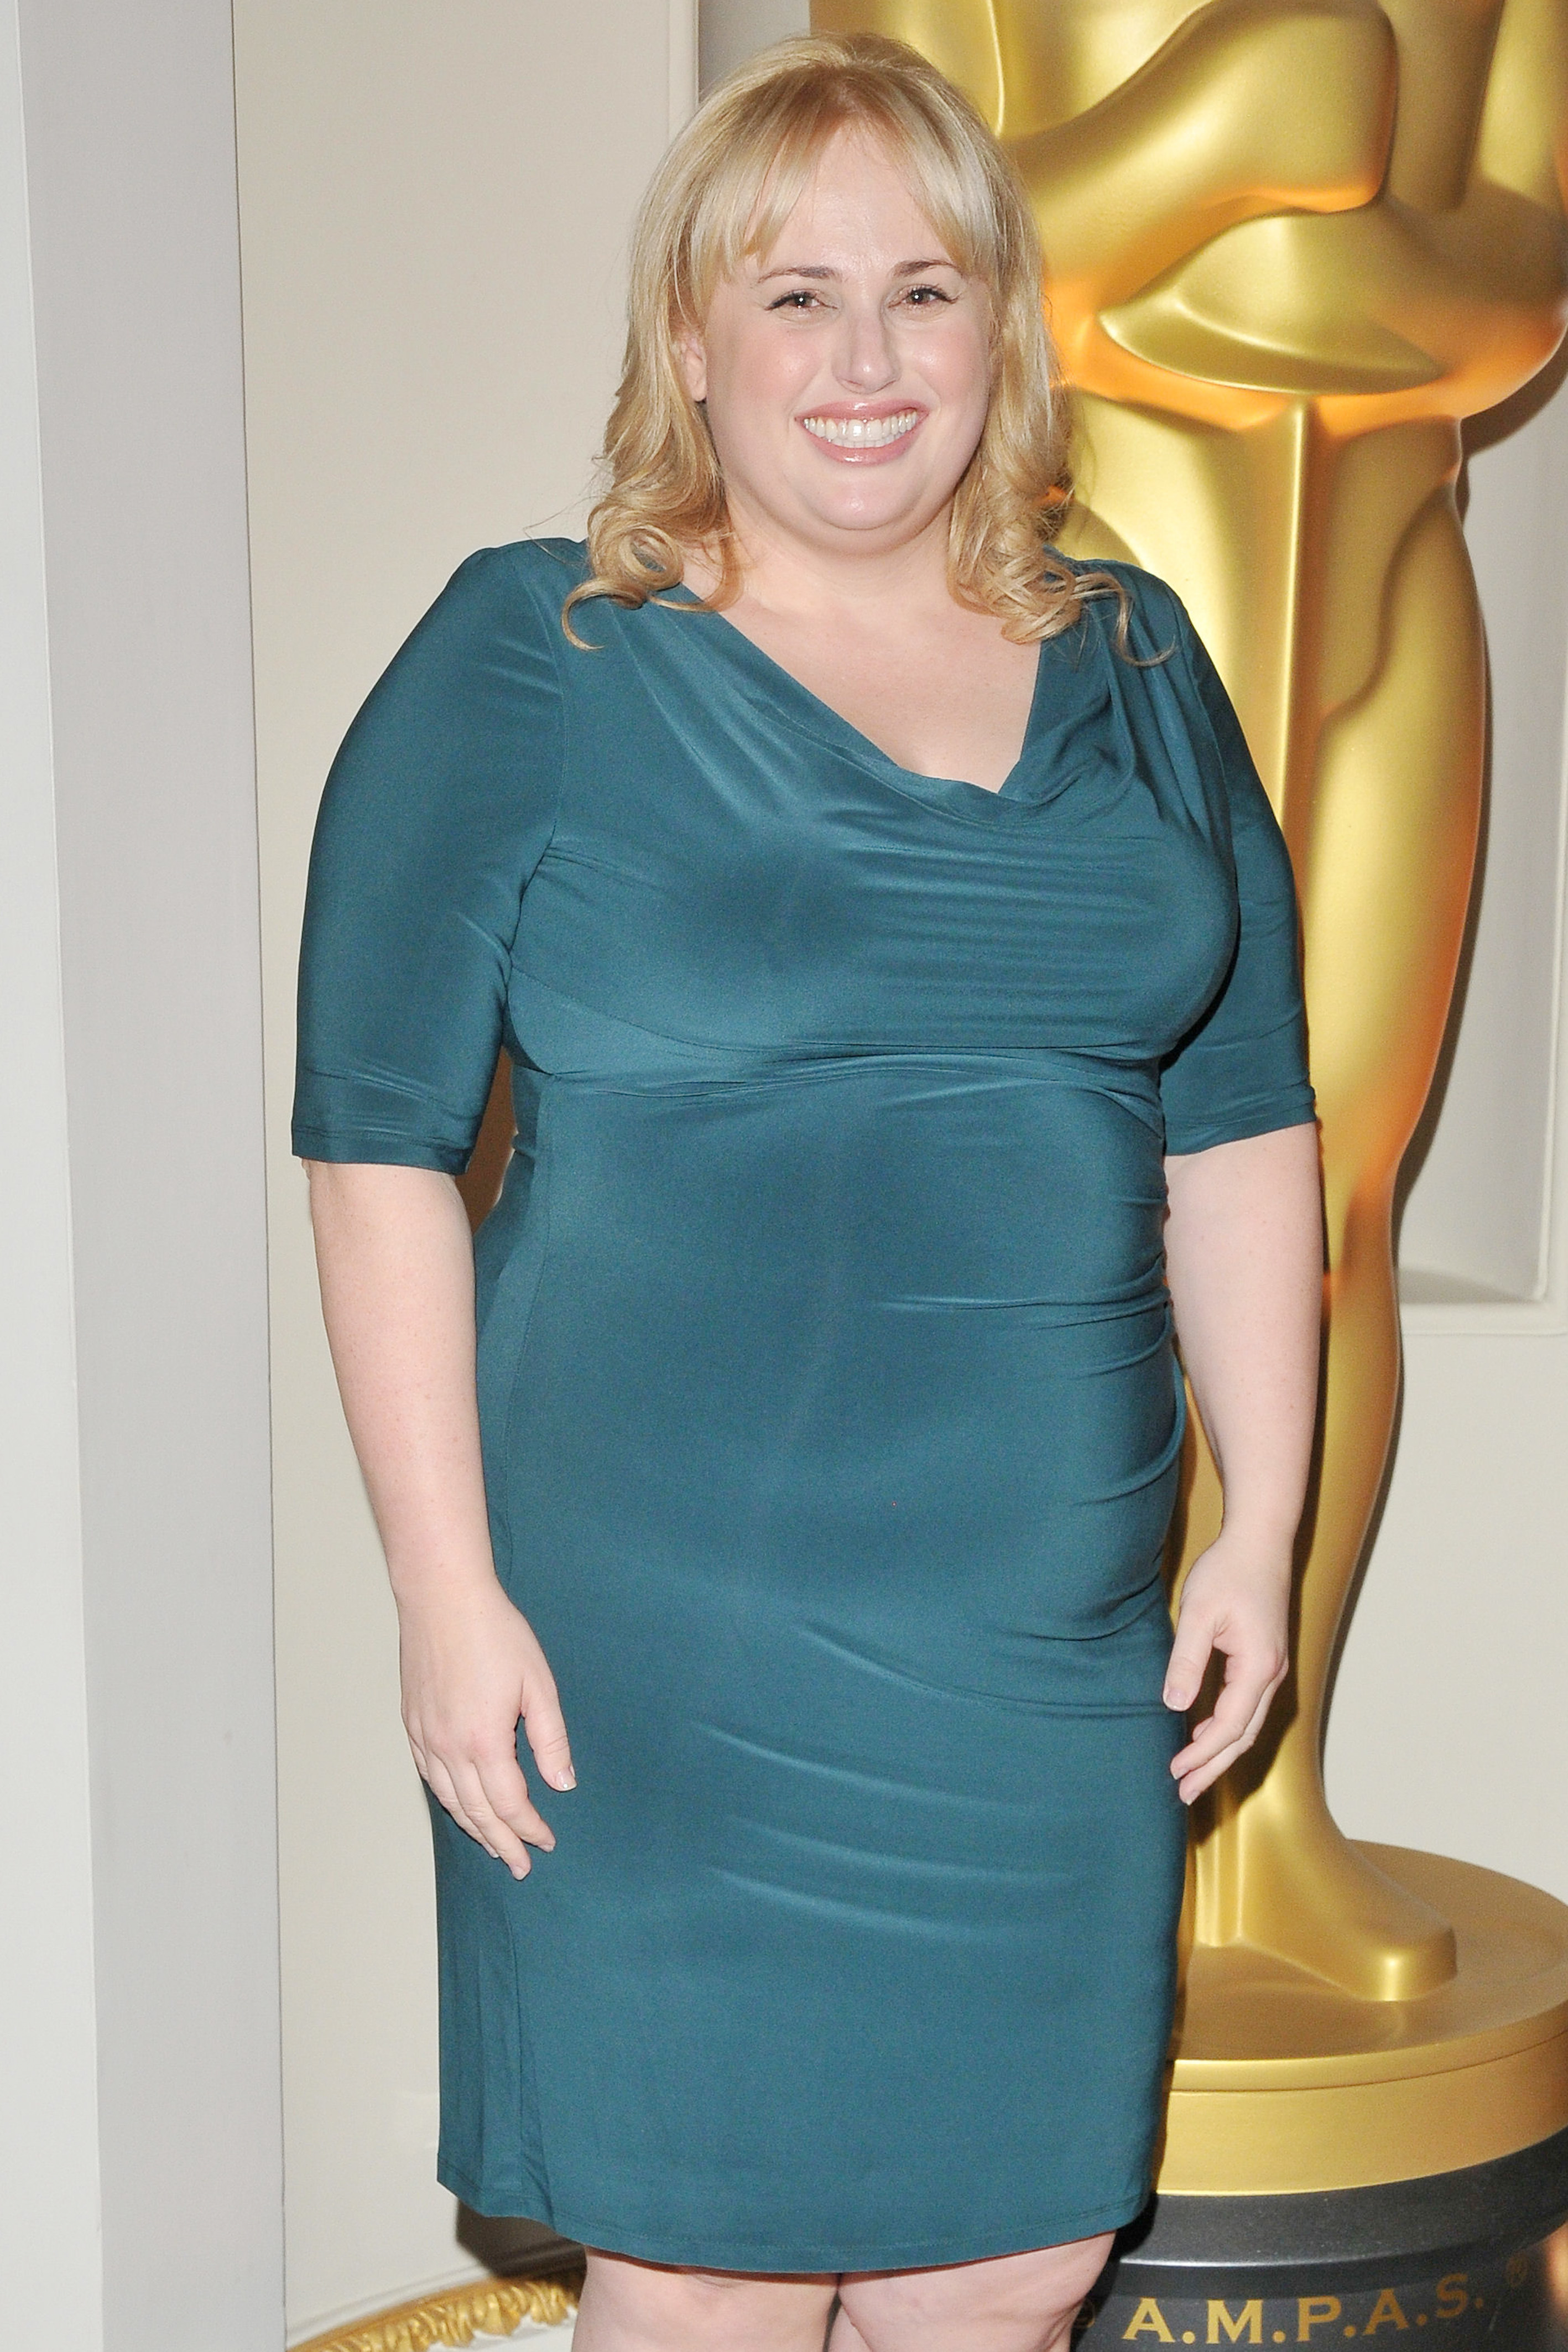 Rebel Wilson attend The Academy of Motion Pictures Arts & Sciences new members party in London on Oct. 5, 2017.